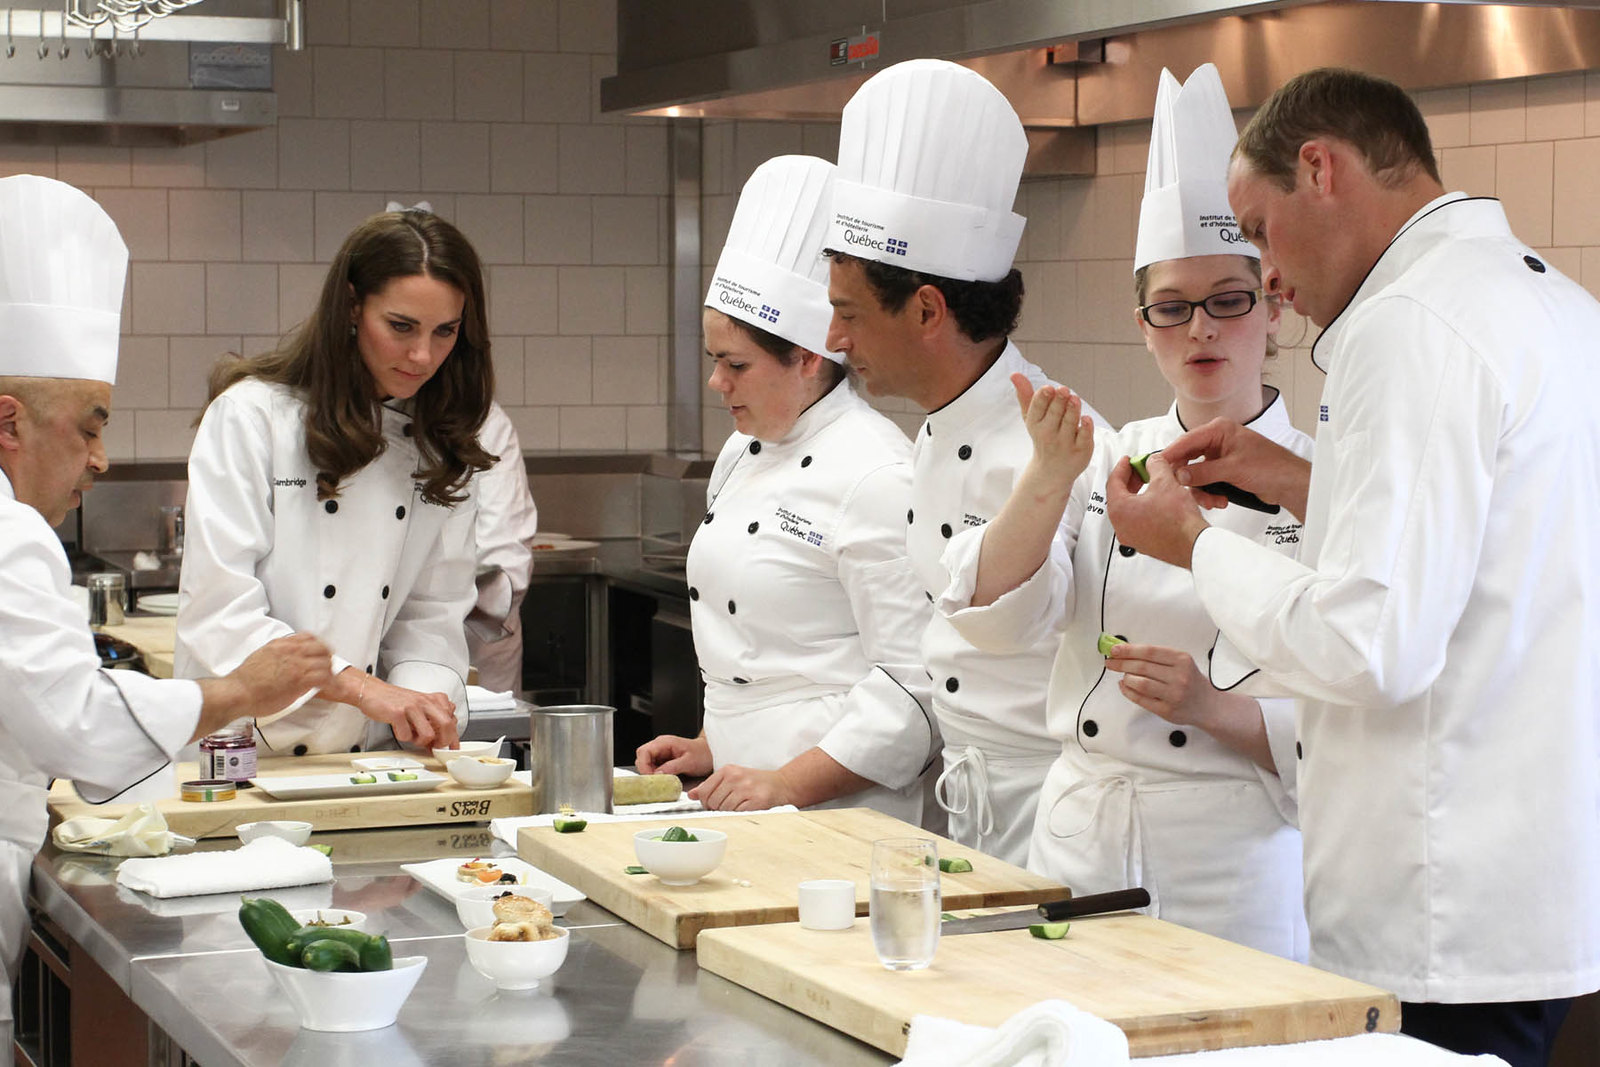 The Duke and Duchess of cambridge tried thier hand at culinary